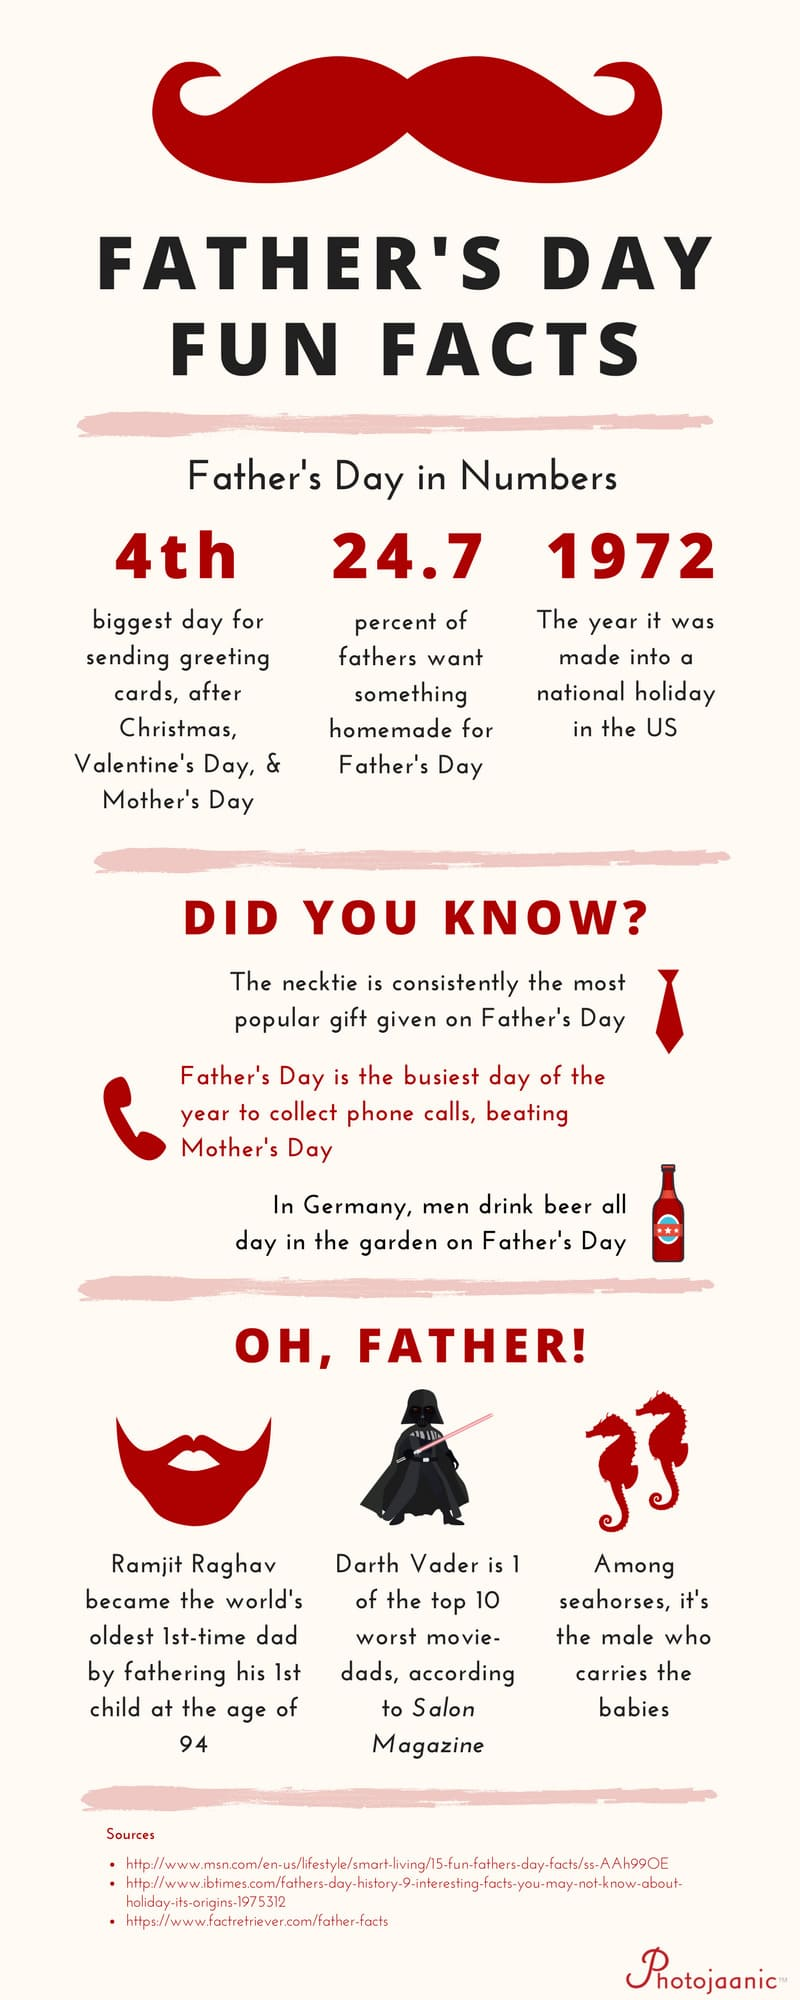 About Father's Day Facts